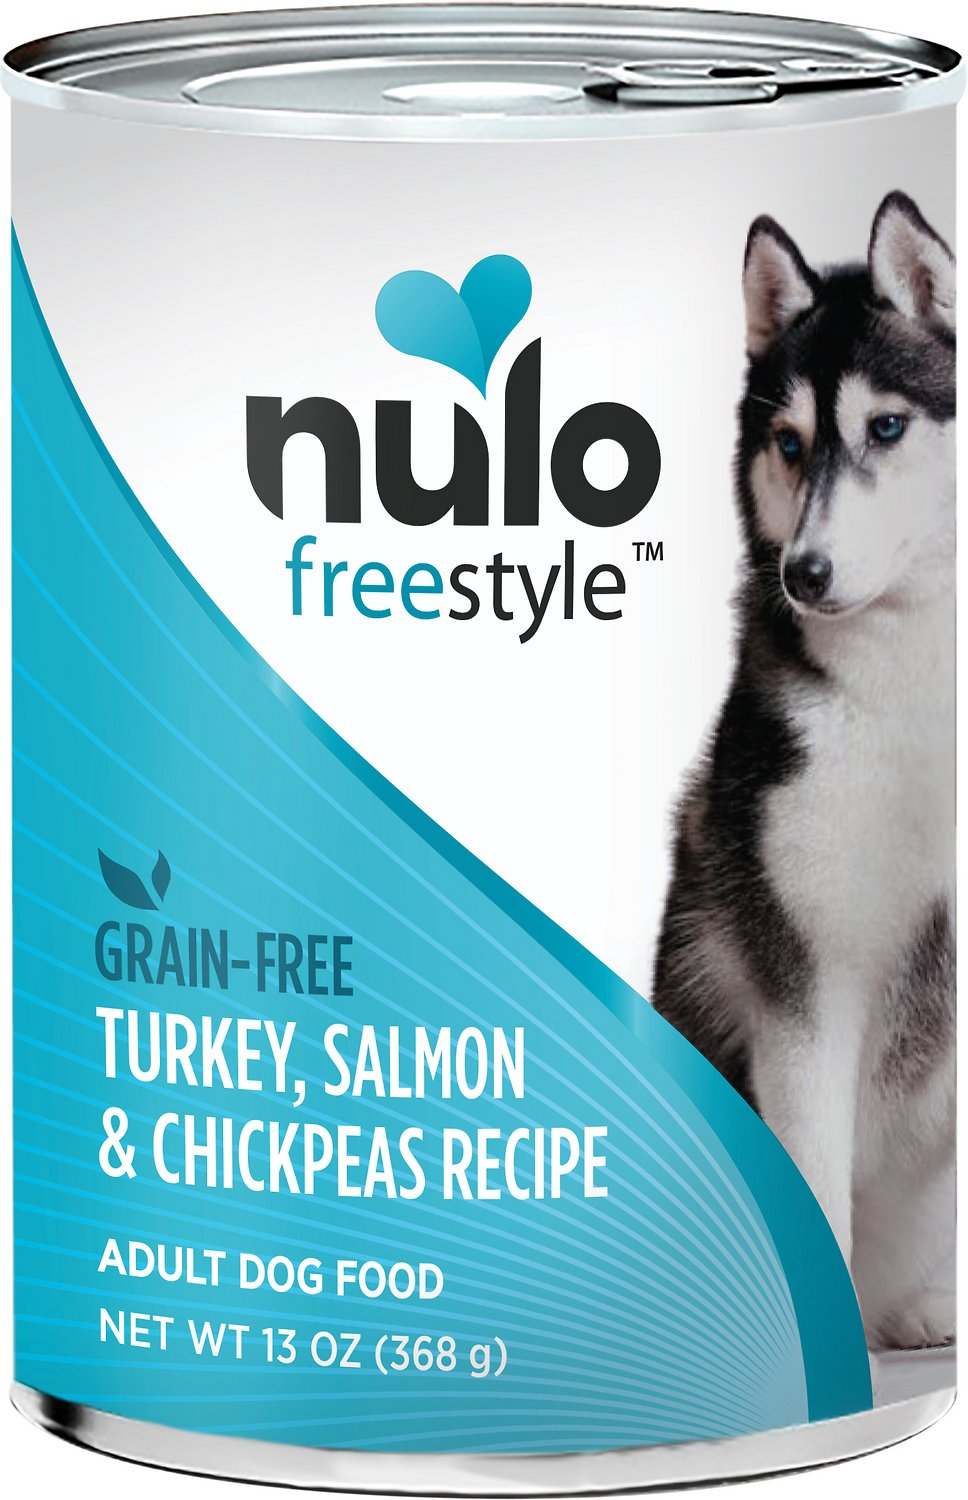 Nulo Dog Freestyle Pate Salmon & Chickpeas Recipe Grain-Free Canned Dog Food Image